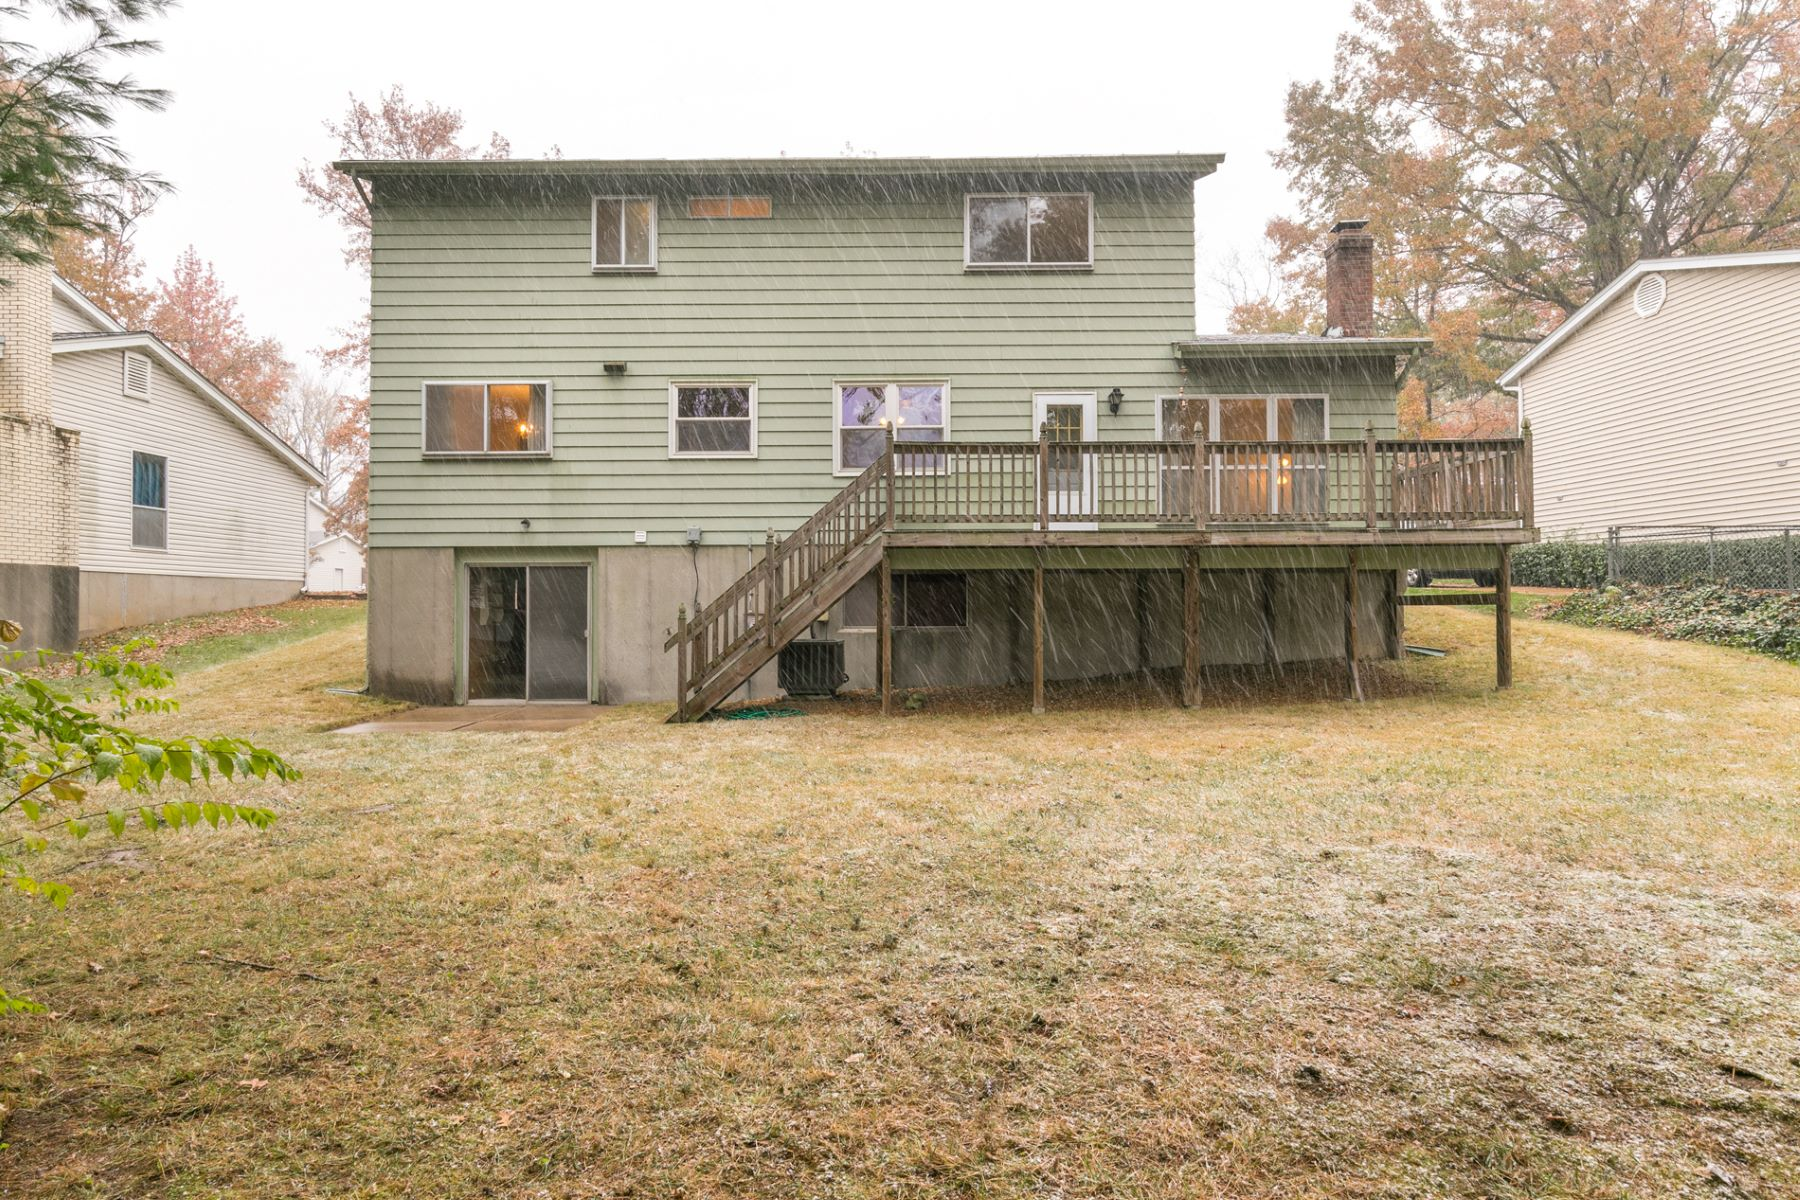 Additional photo for property listing at Cottagemill Dr 1256 Cottagemill Dr Manchester, Missouri 63021 United States